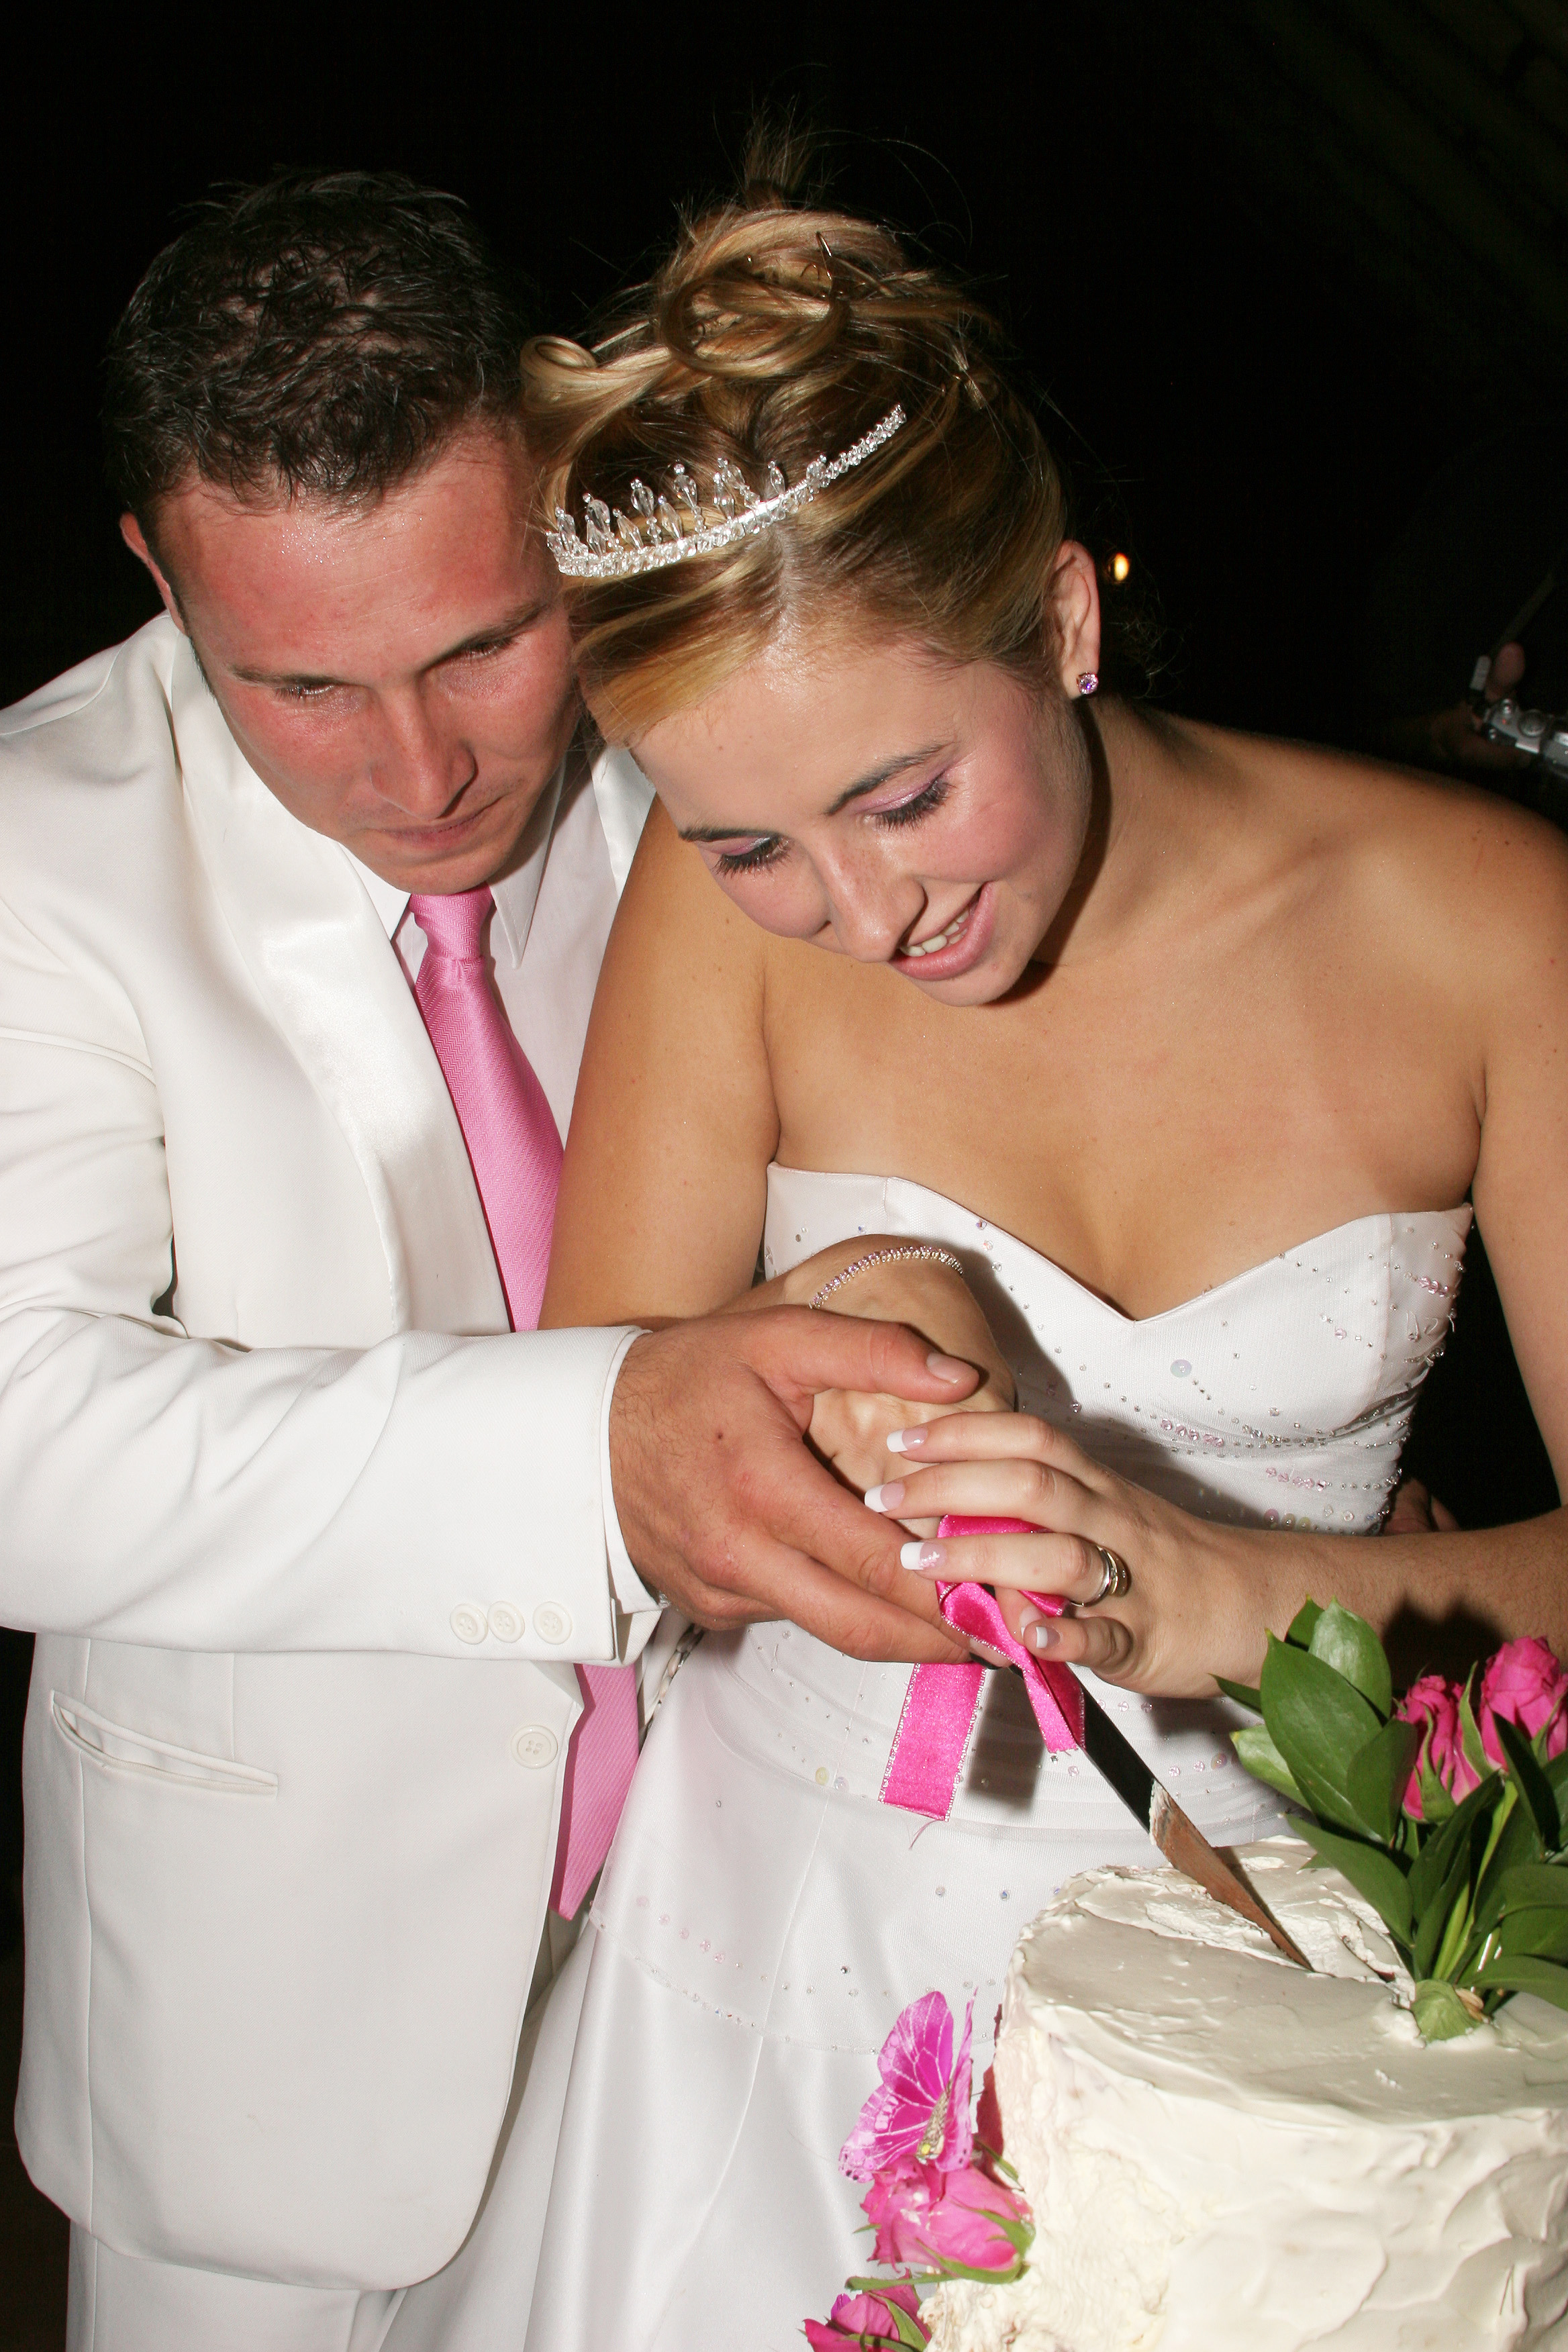 bigstock-Wedding-Couple-Cutting.jpg